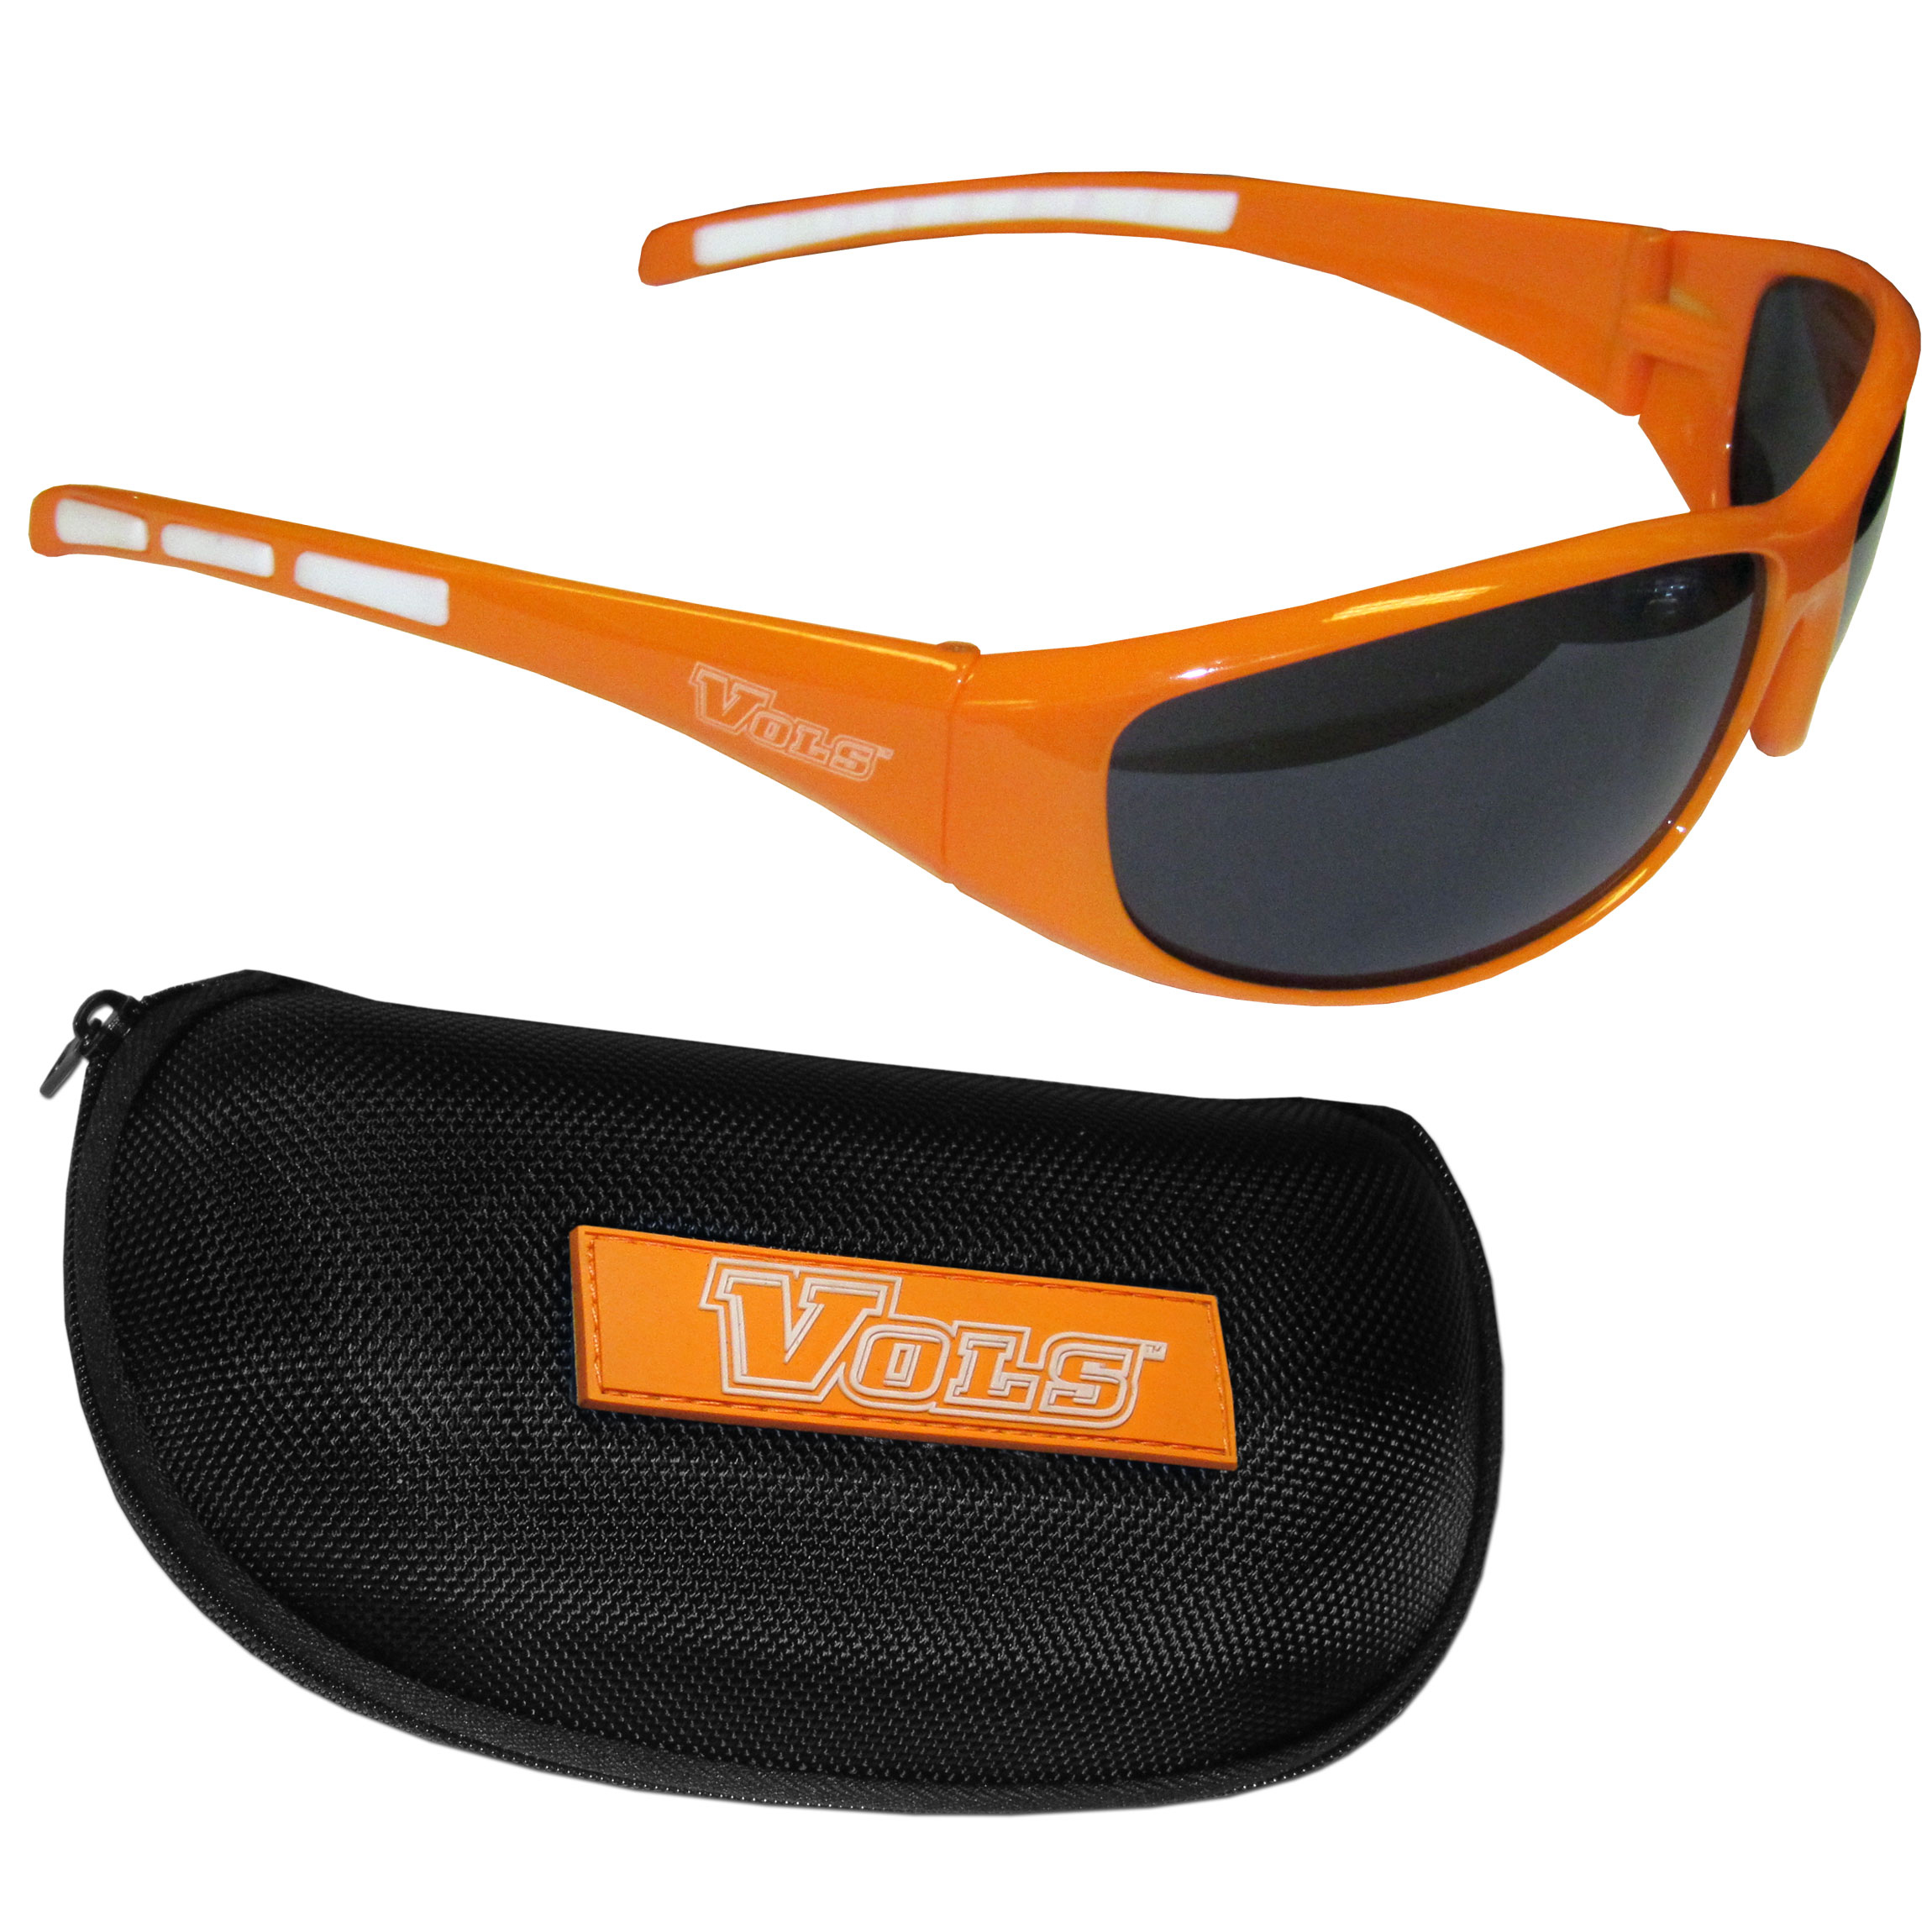 Tennessee Volunteers Wrap Sunglass and Case Set - This great set includes a high quality pair of Tennessee Volunteers wrap sunglasses and hard carrying case.